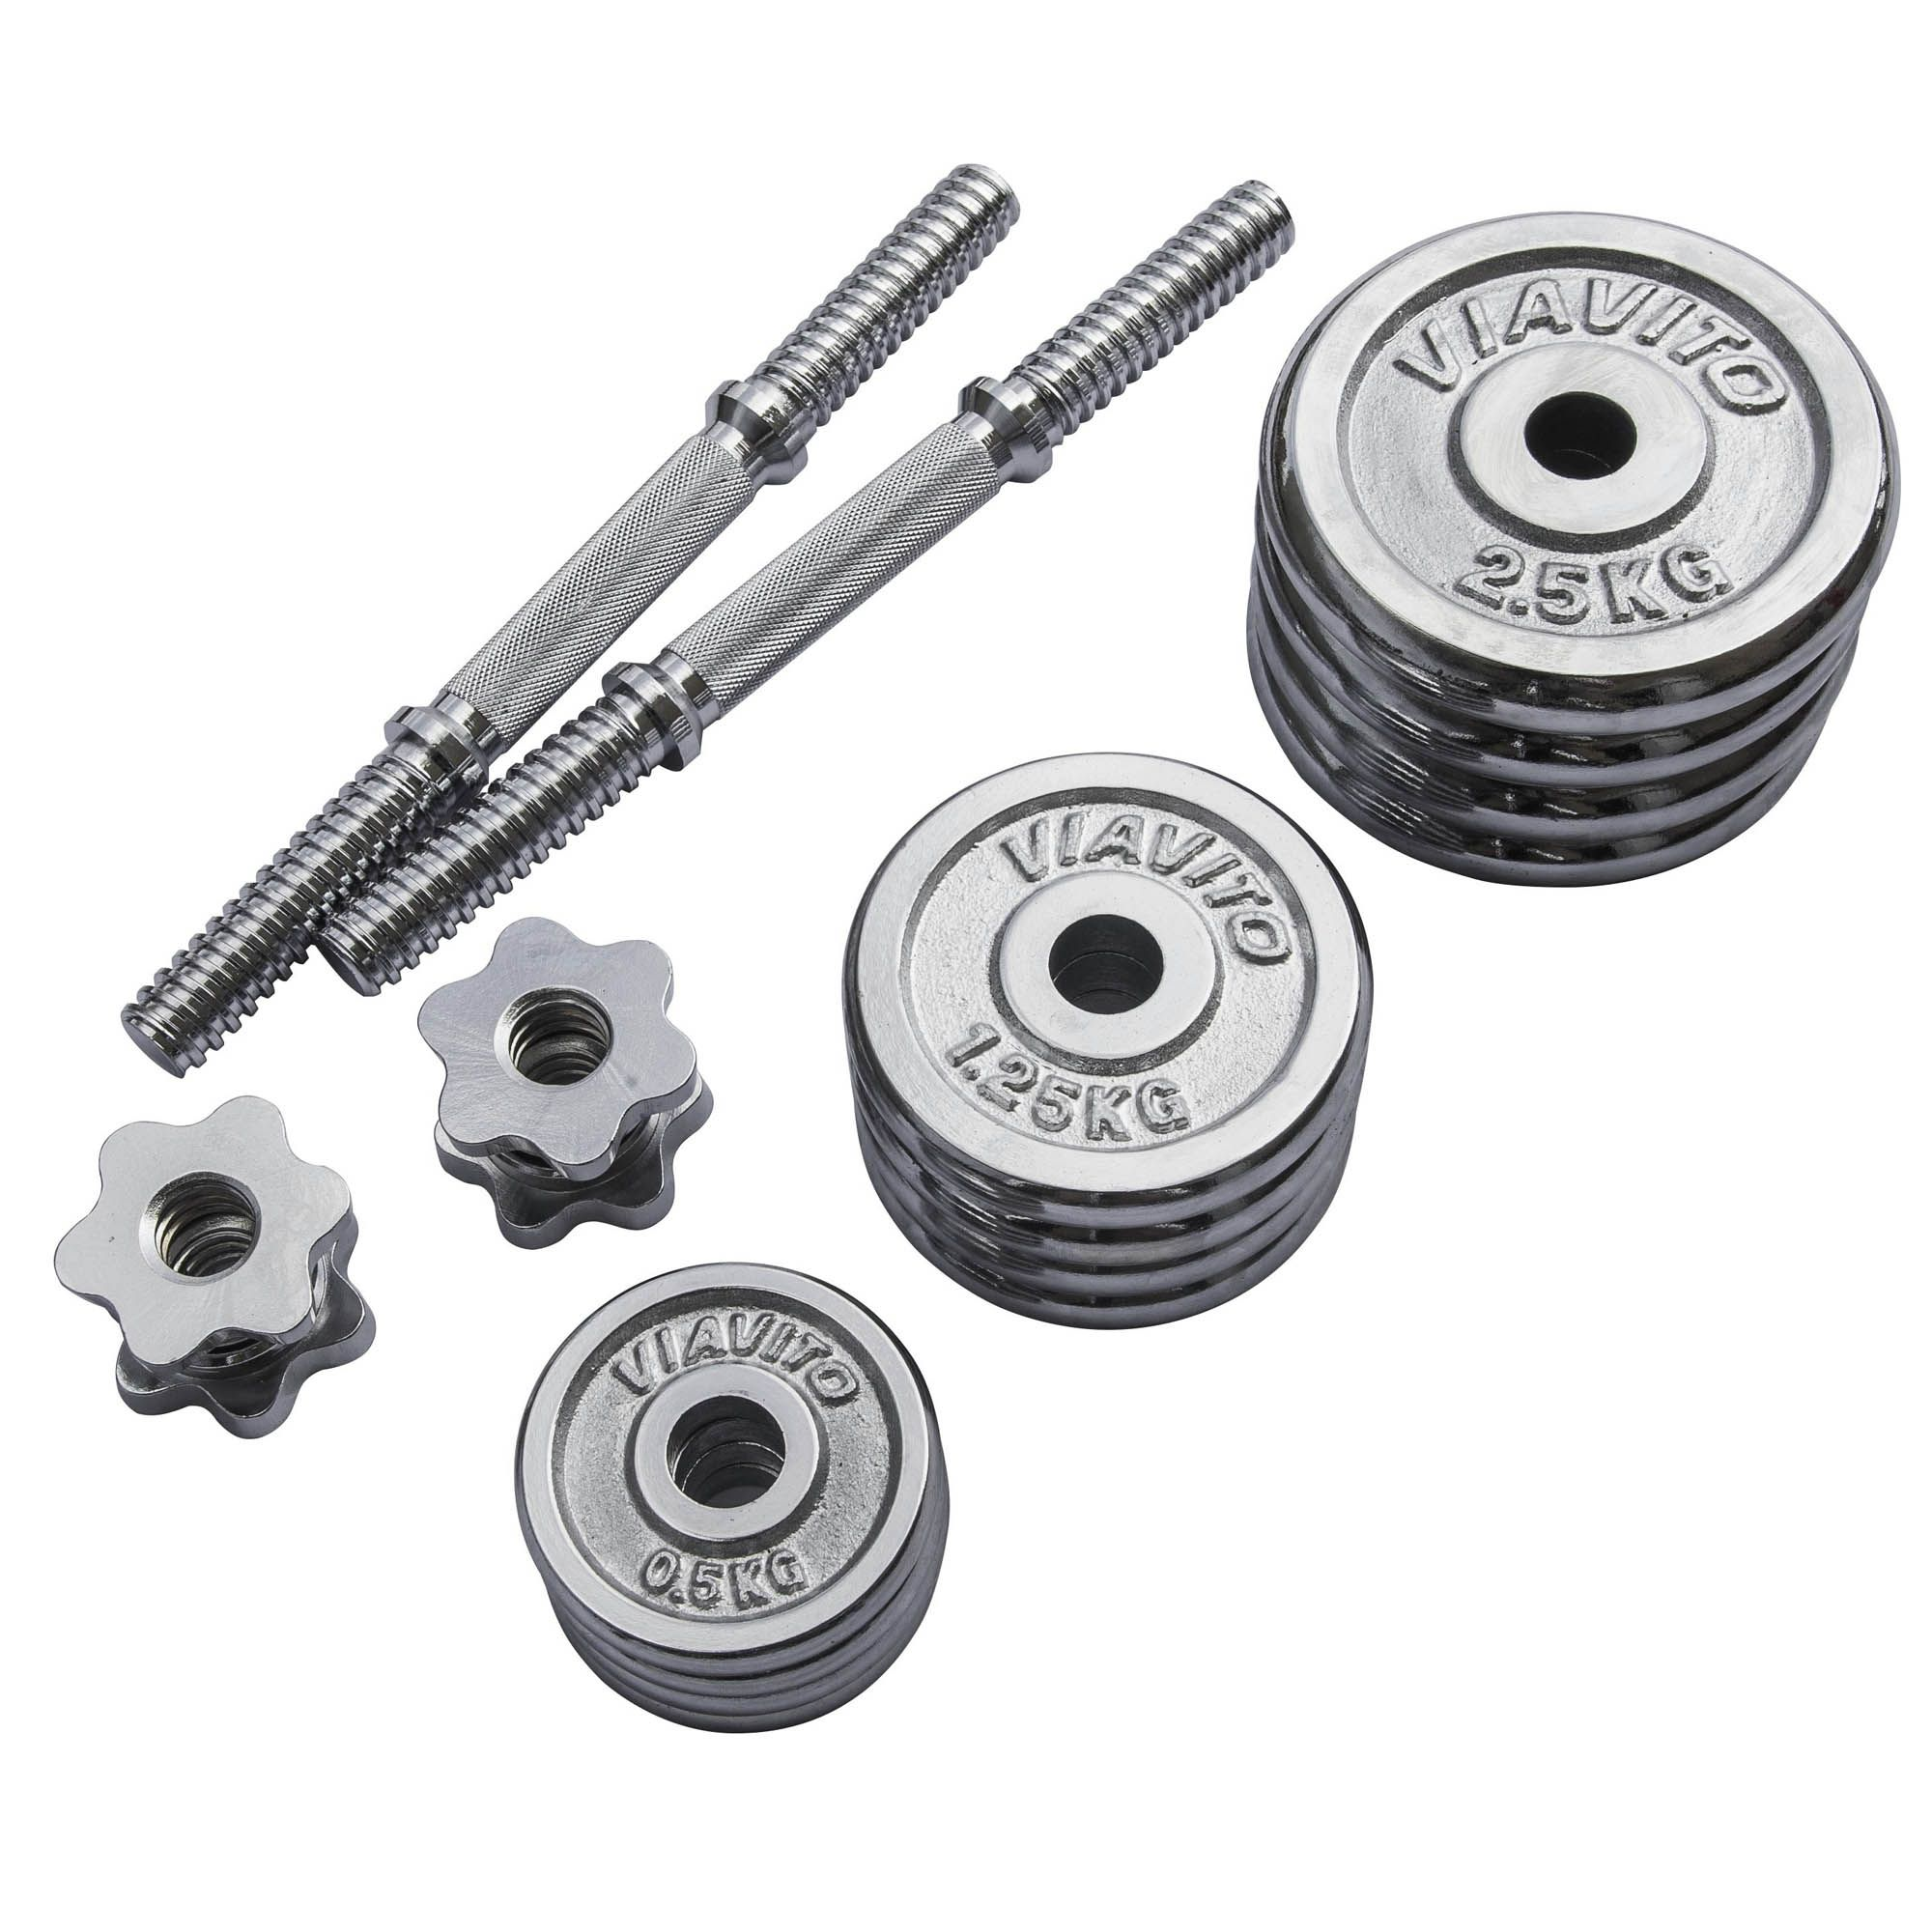 York Chrome Dumbbell Set 15kg: Viavito 20kg Chrome Dumbbell Set